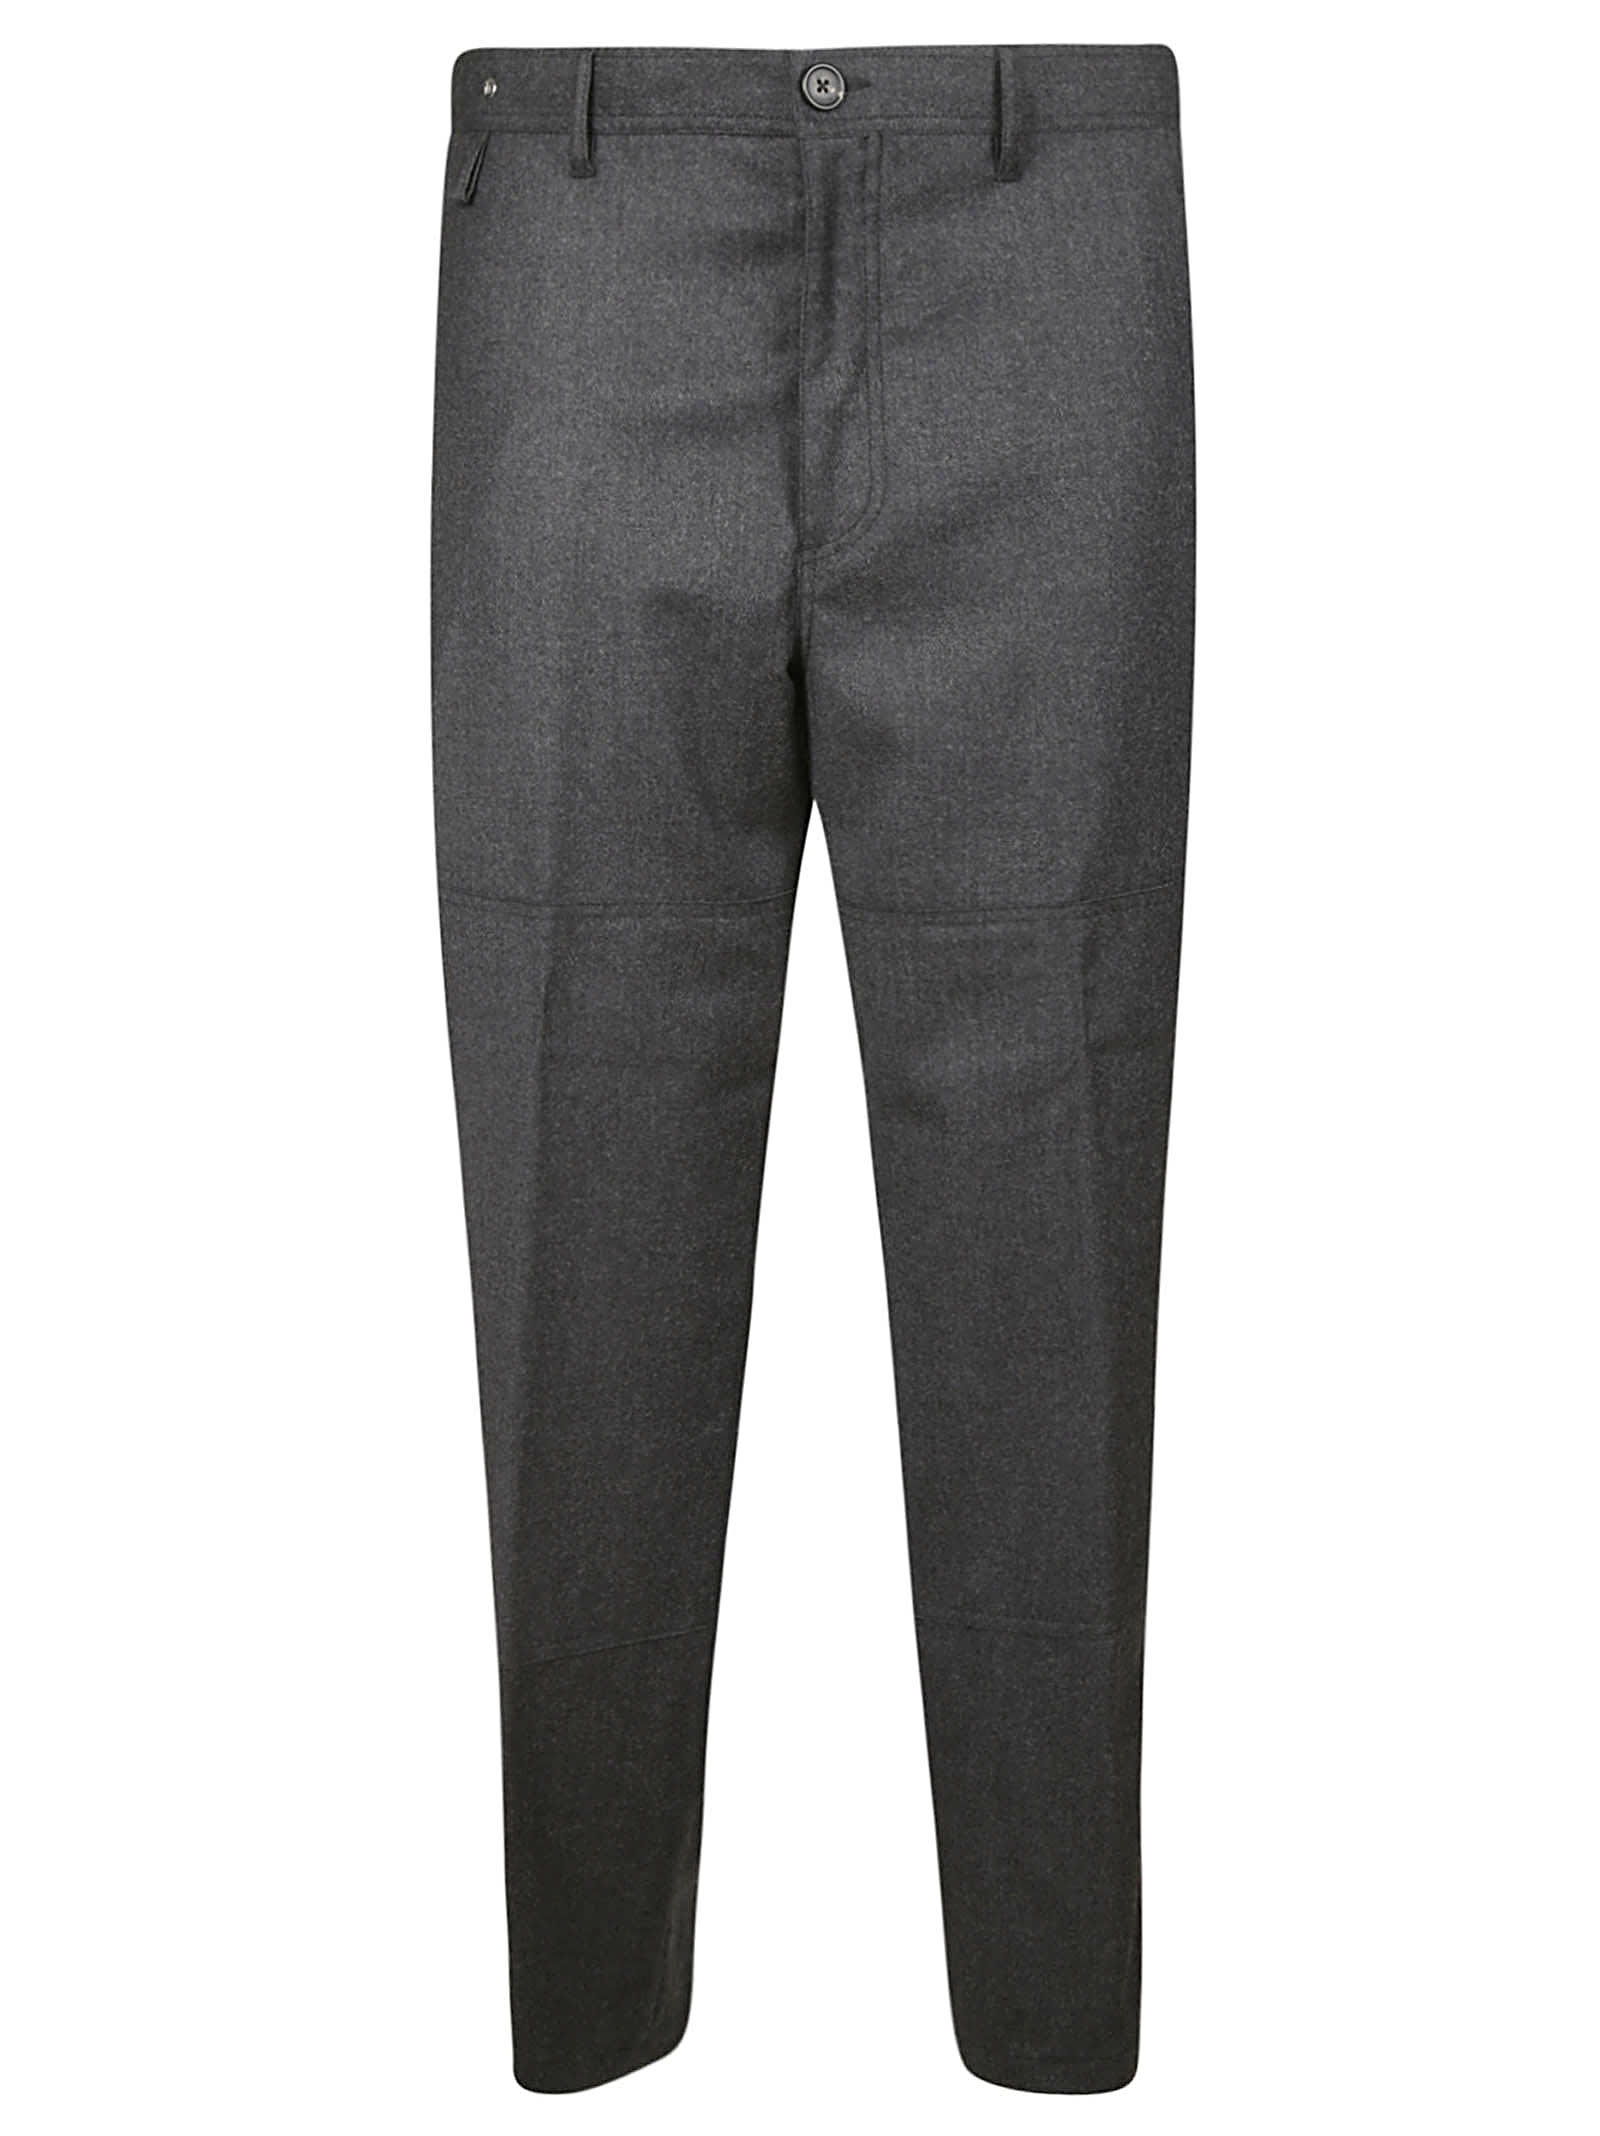 Lanvin Classic Straight Buttoned Trousers